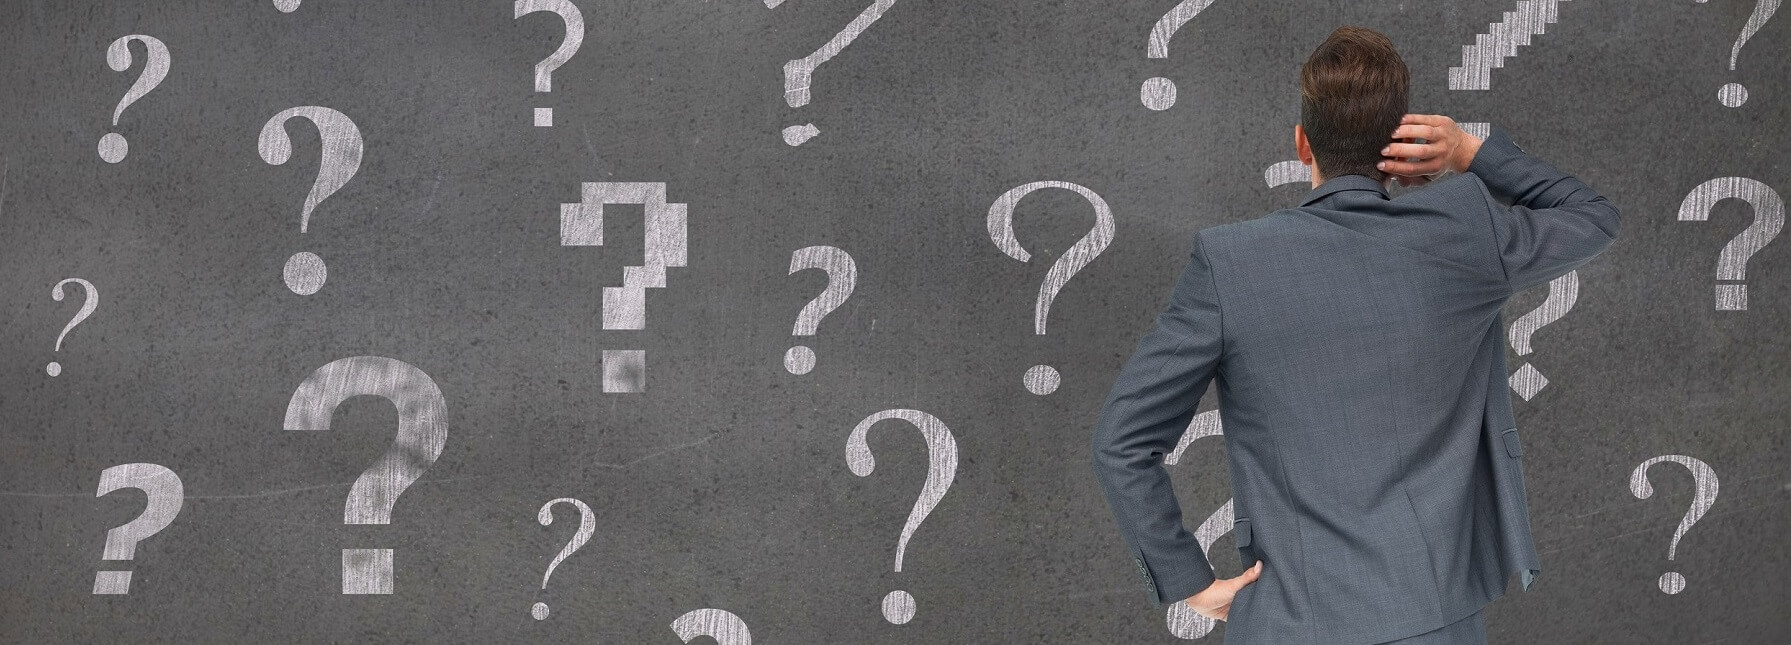 Six questions to ask your file gateway vendor